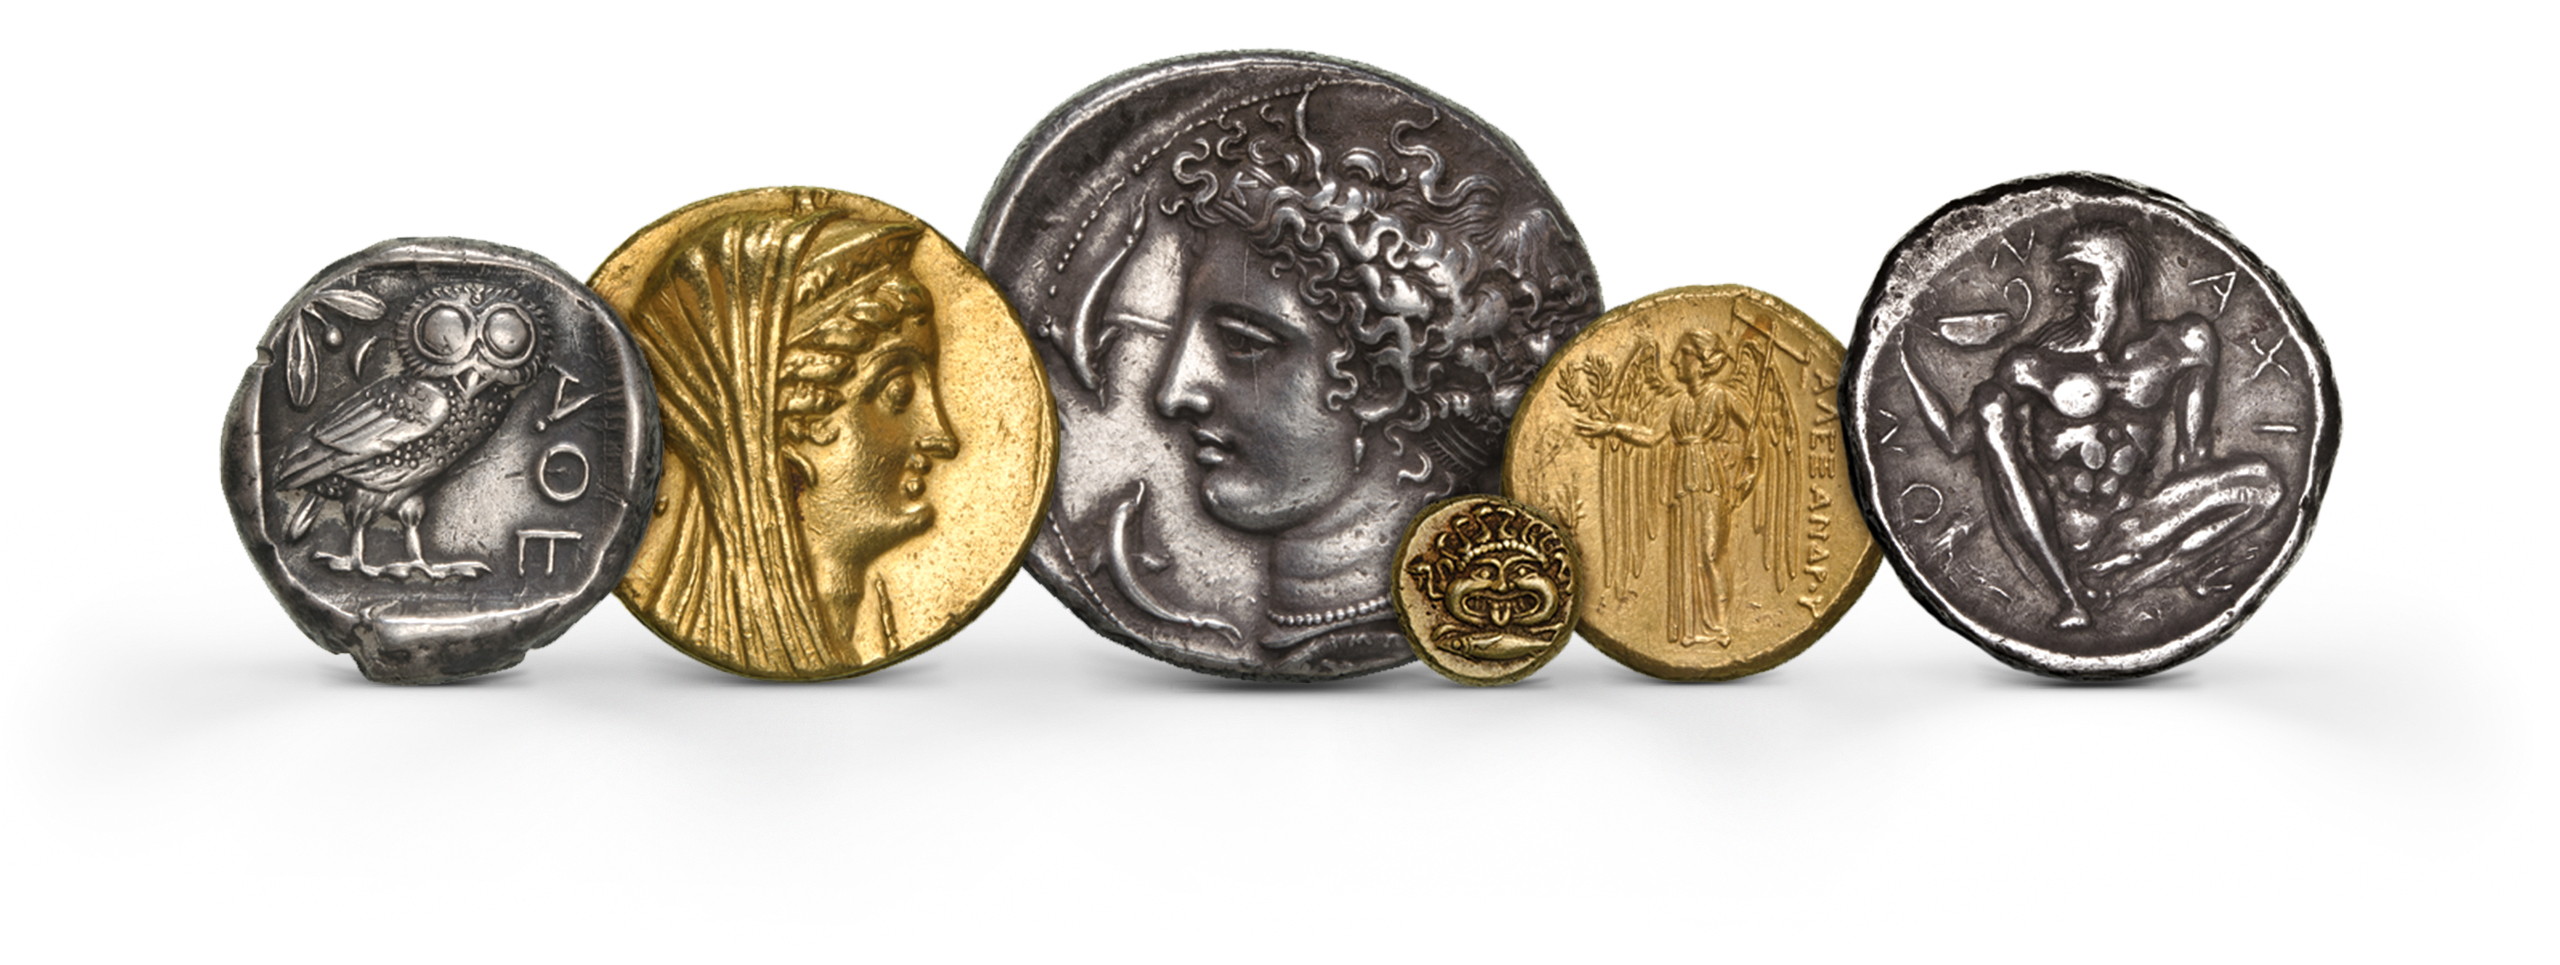 Photography of Greek Coins in gold and silver from several periods, photographed for Morton and Eden in association with Sotheby's sold in auction in London Photography and retouch by Maria Queralt